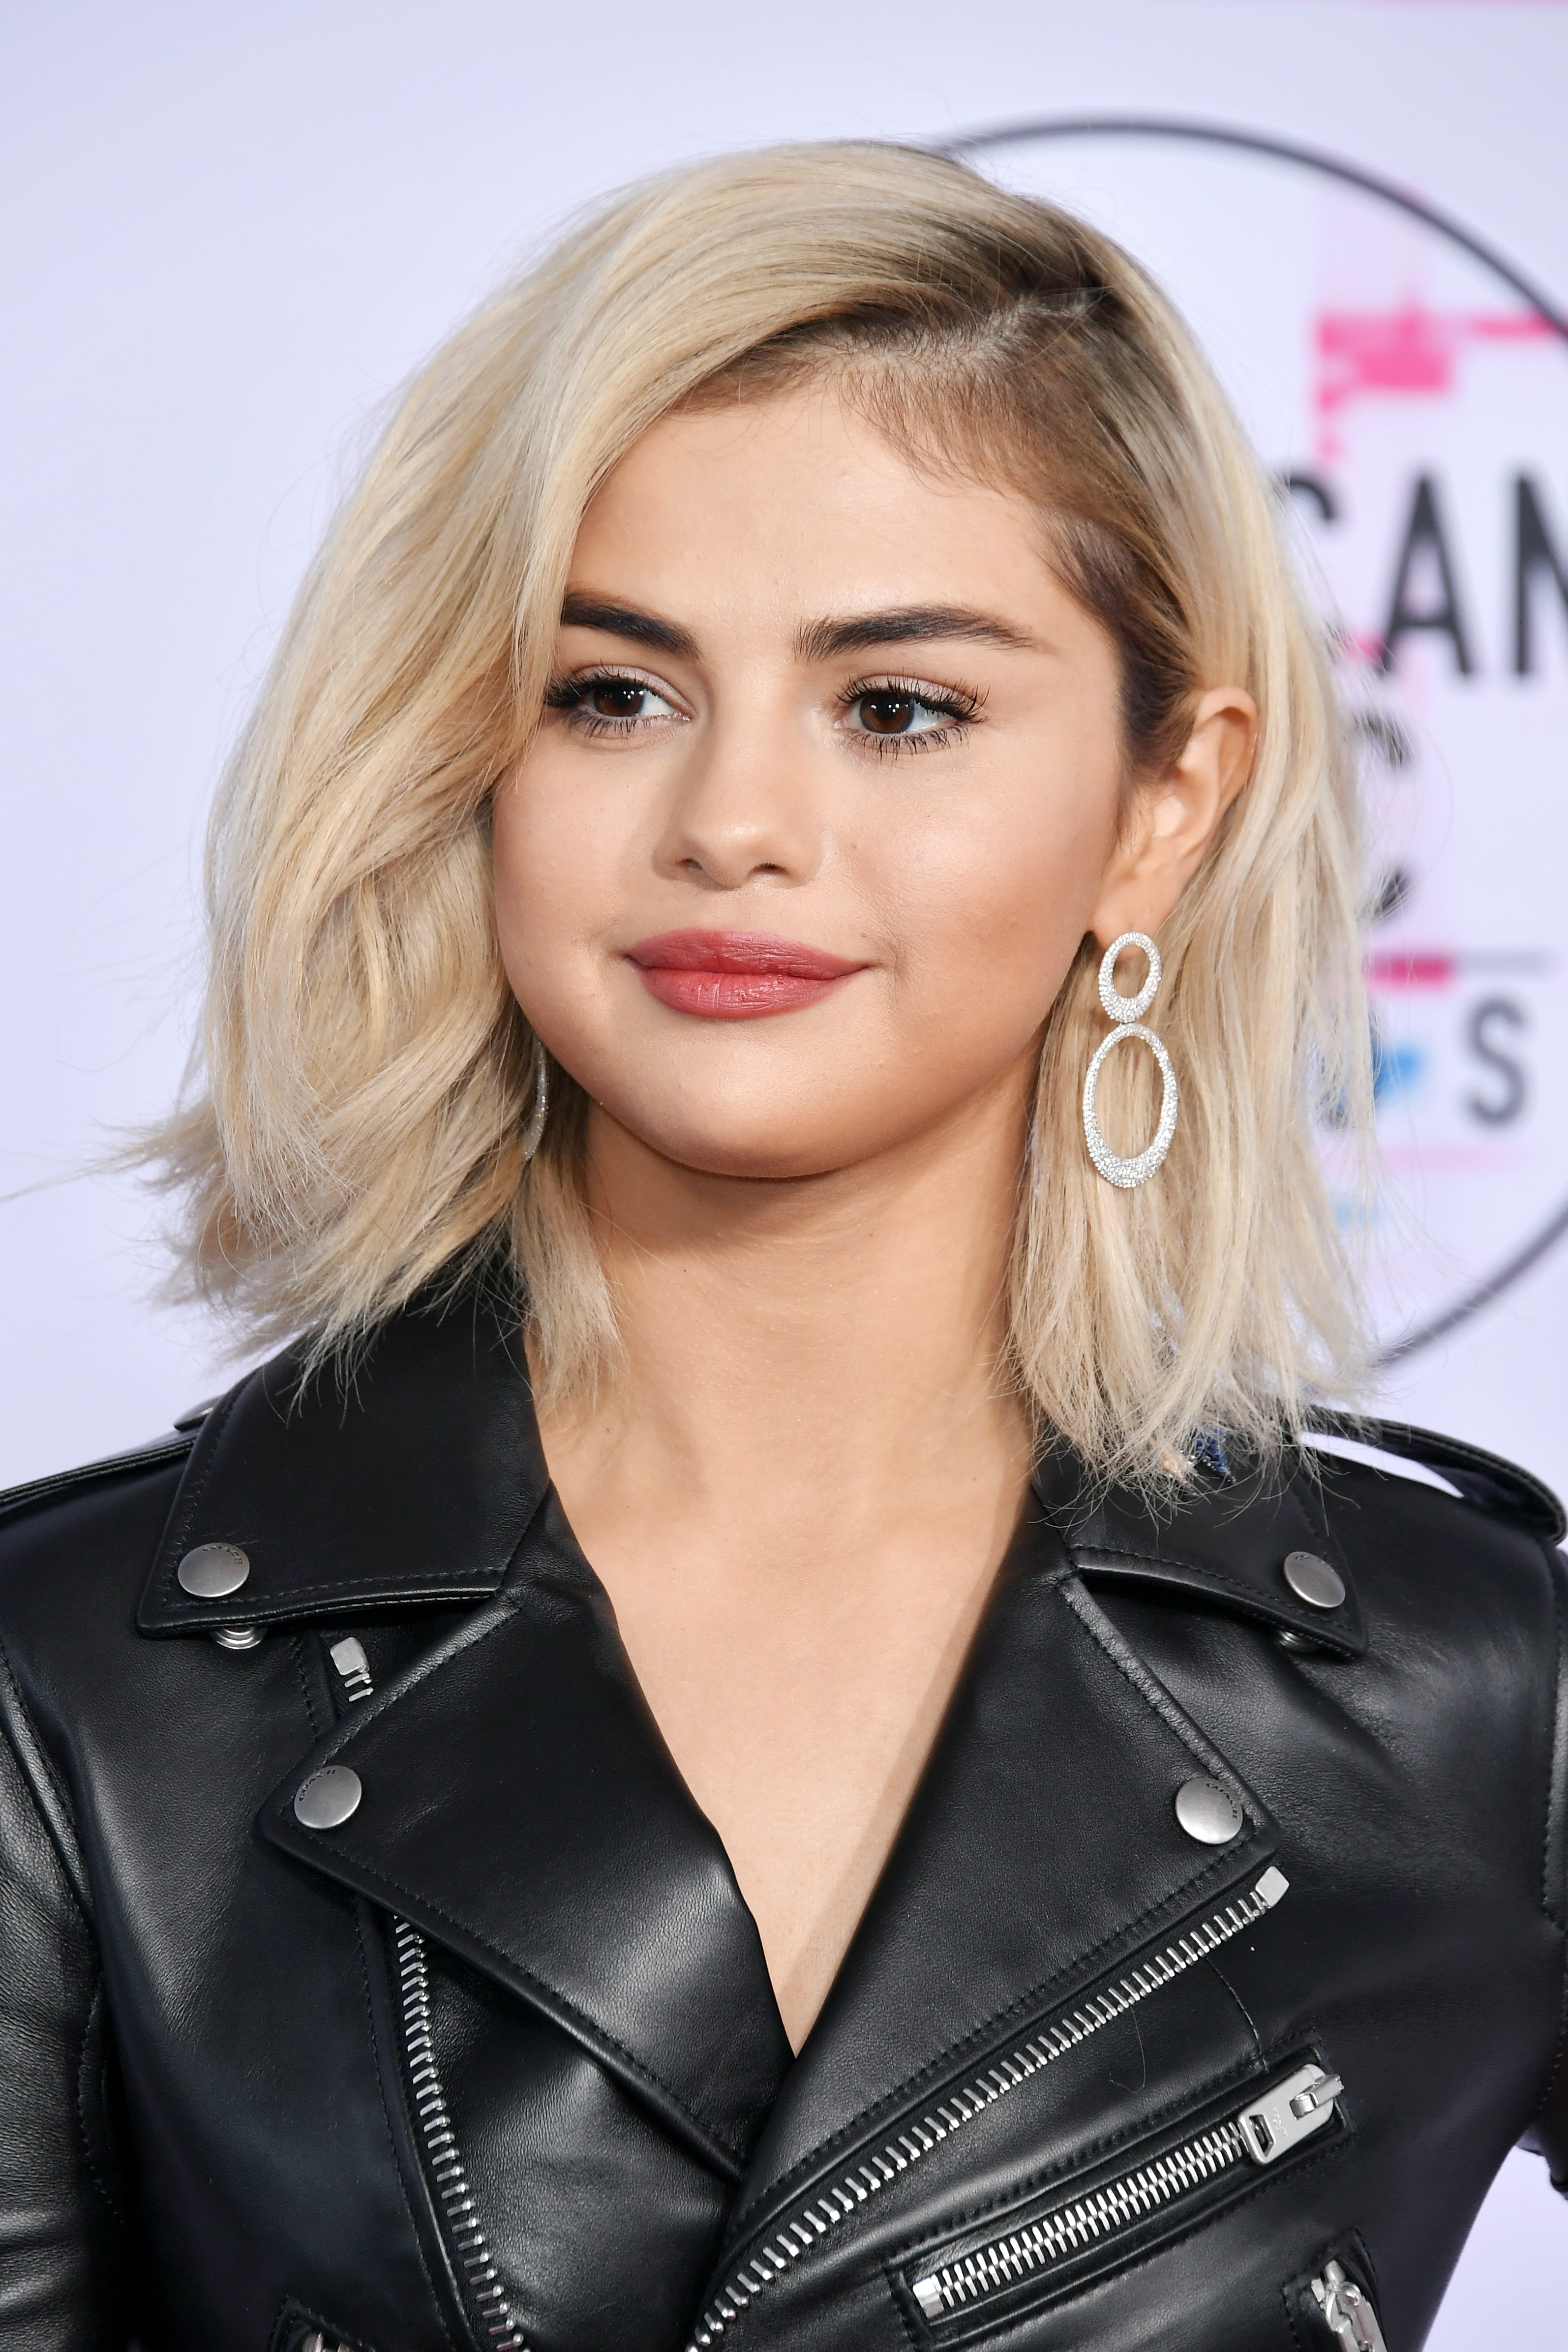 selena gomez's new hair features a hidden undercut & i'm buzzing